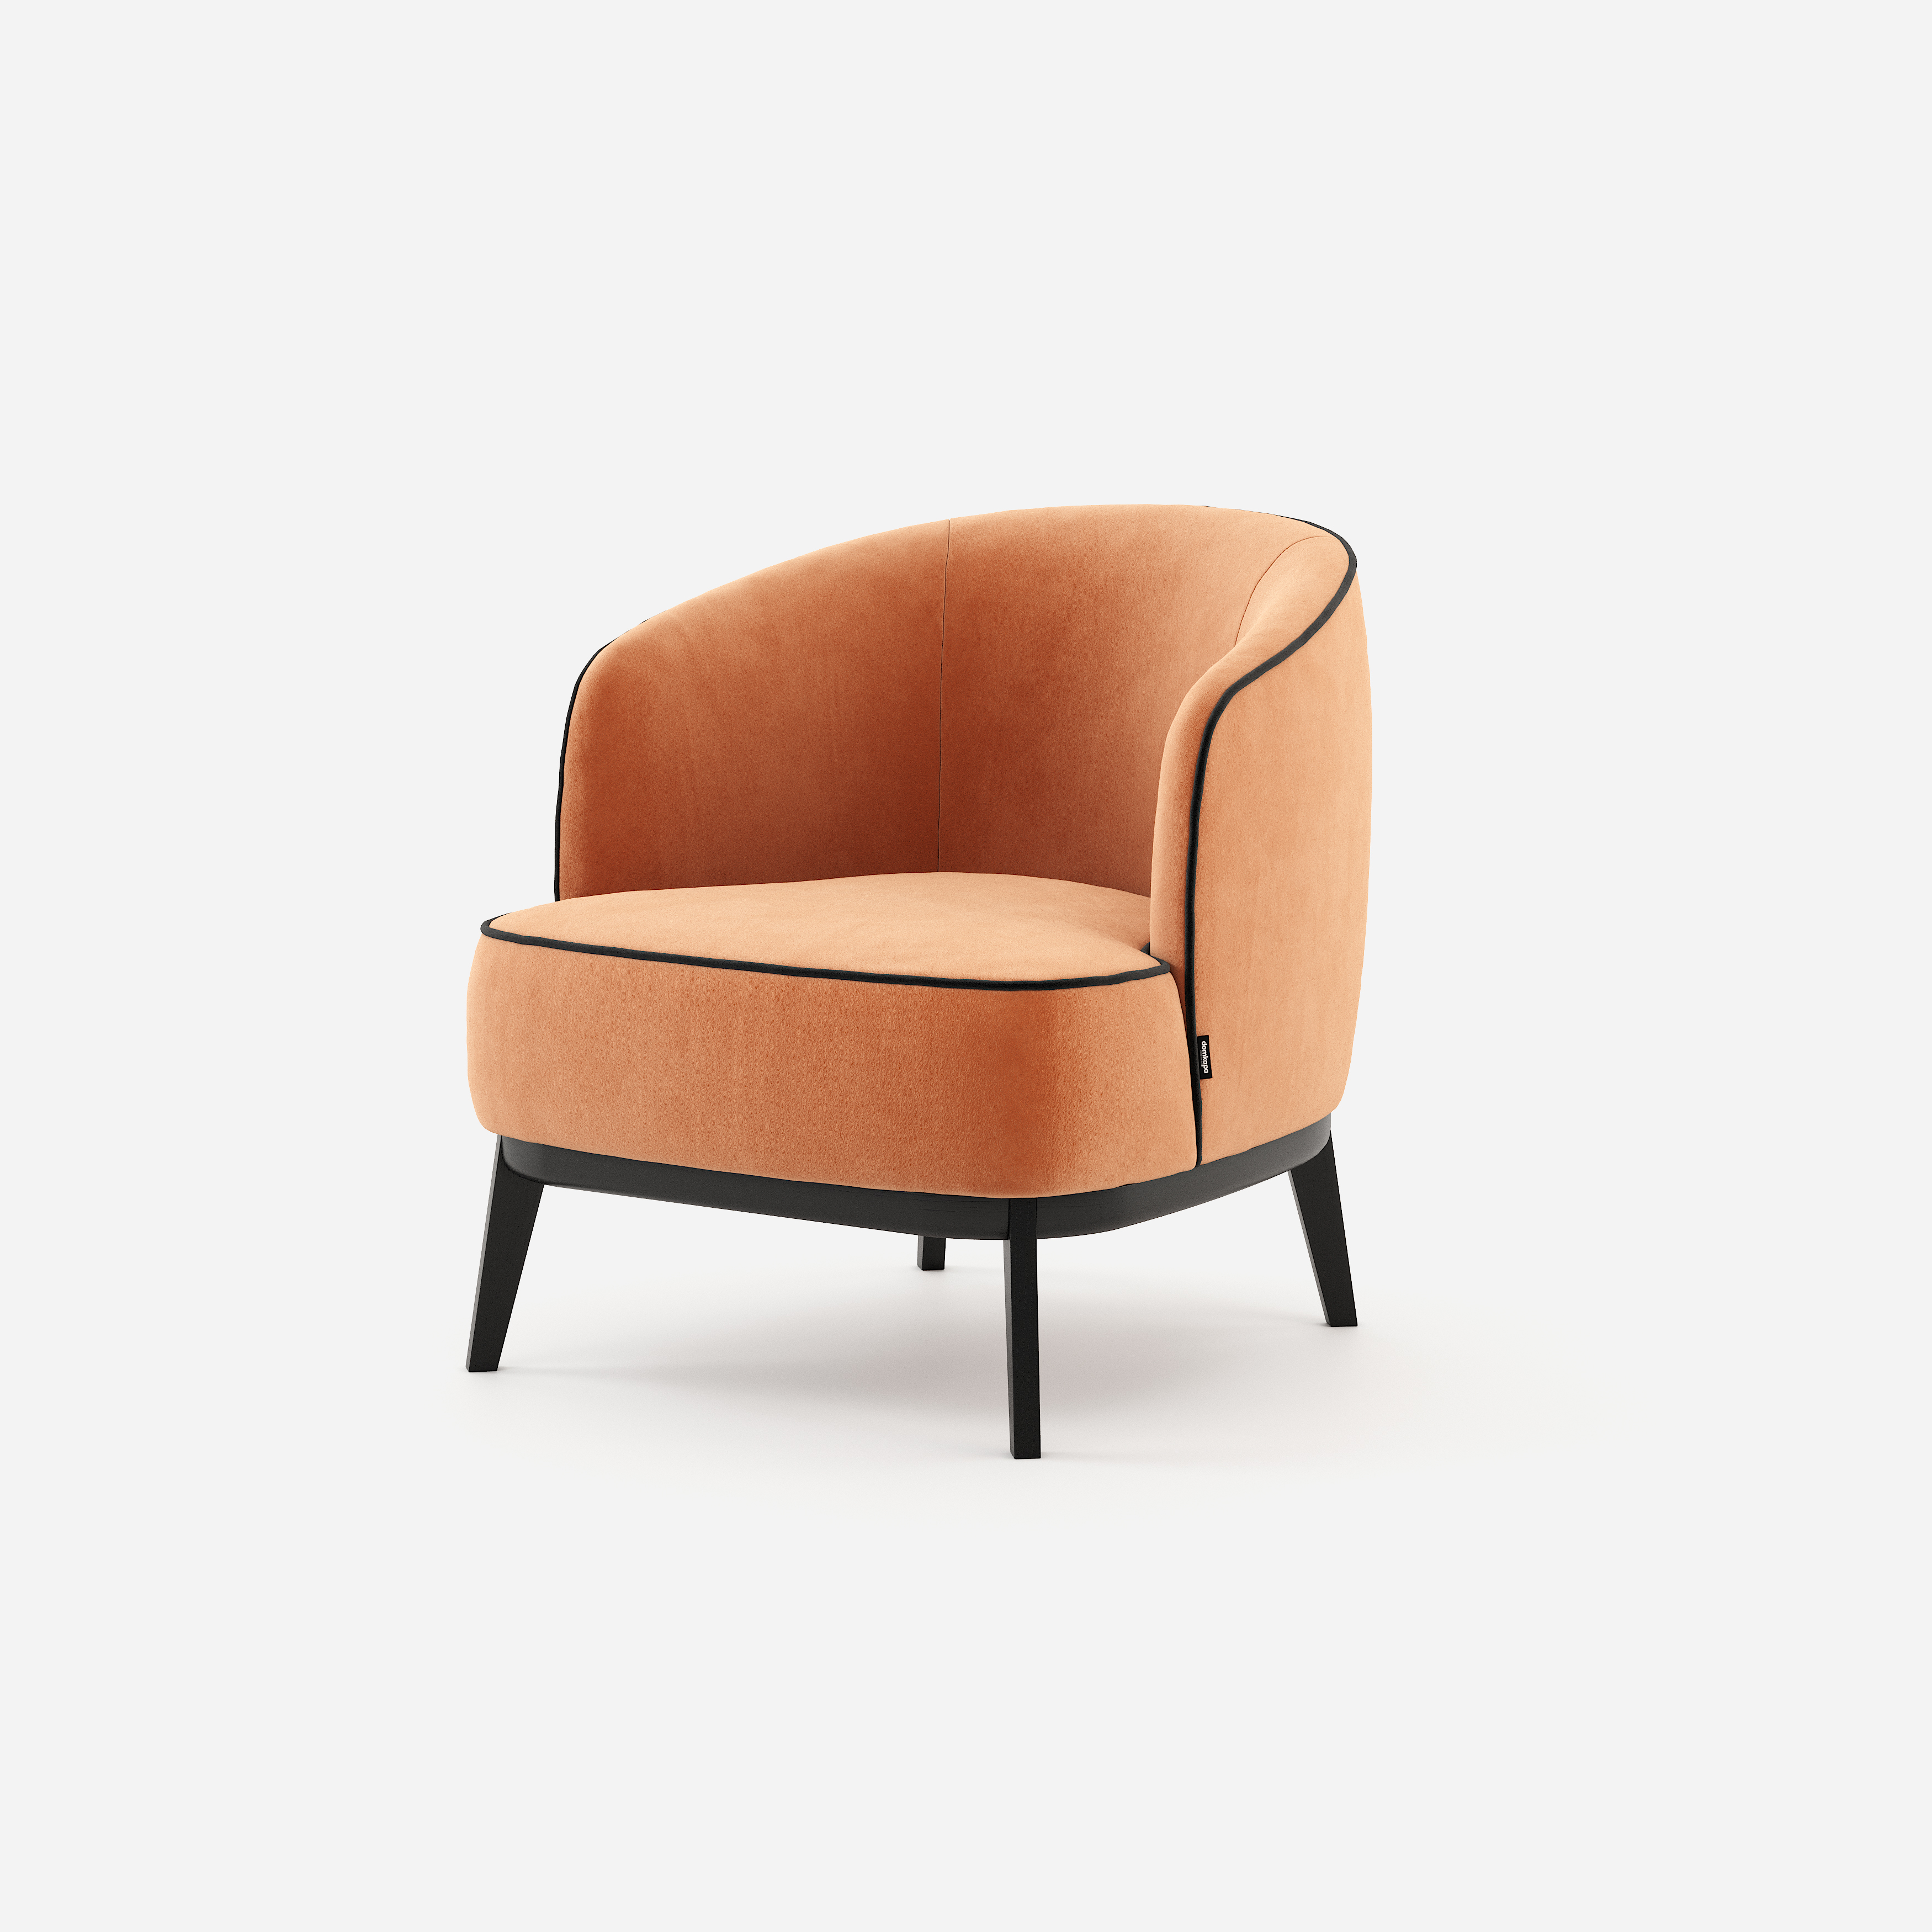 megan-armchair-cadeirao-domkapa-velvet-sitting-luxe-materials-fabrics-finishes-comfortable-oversized-design-1